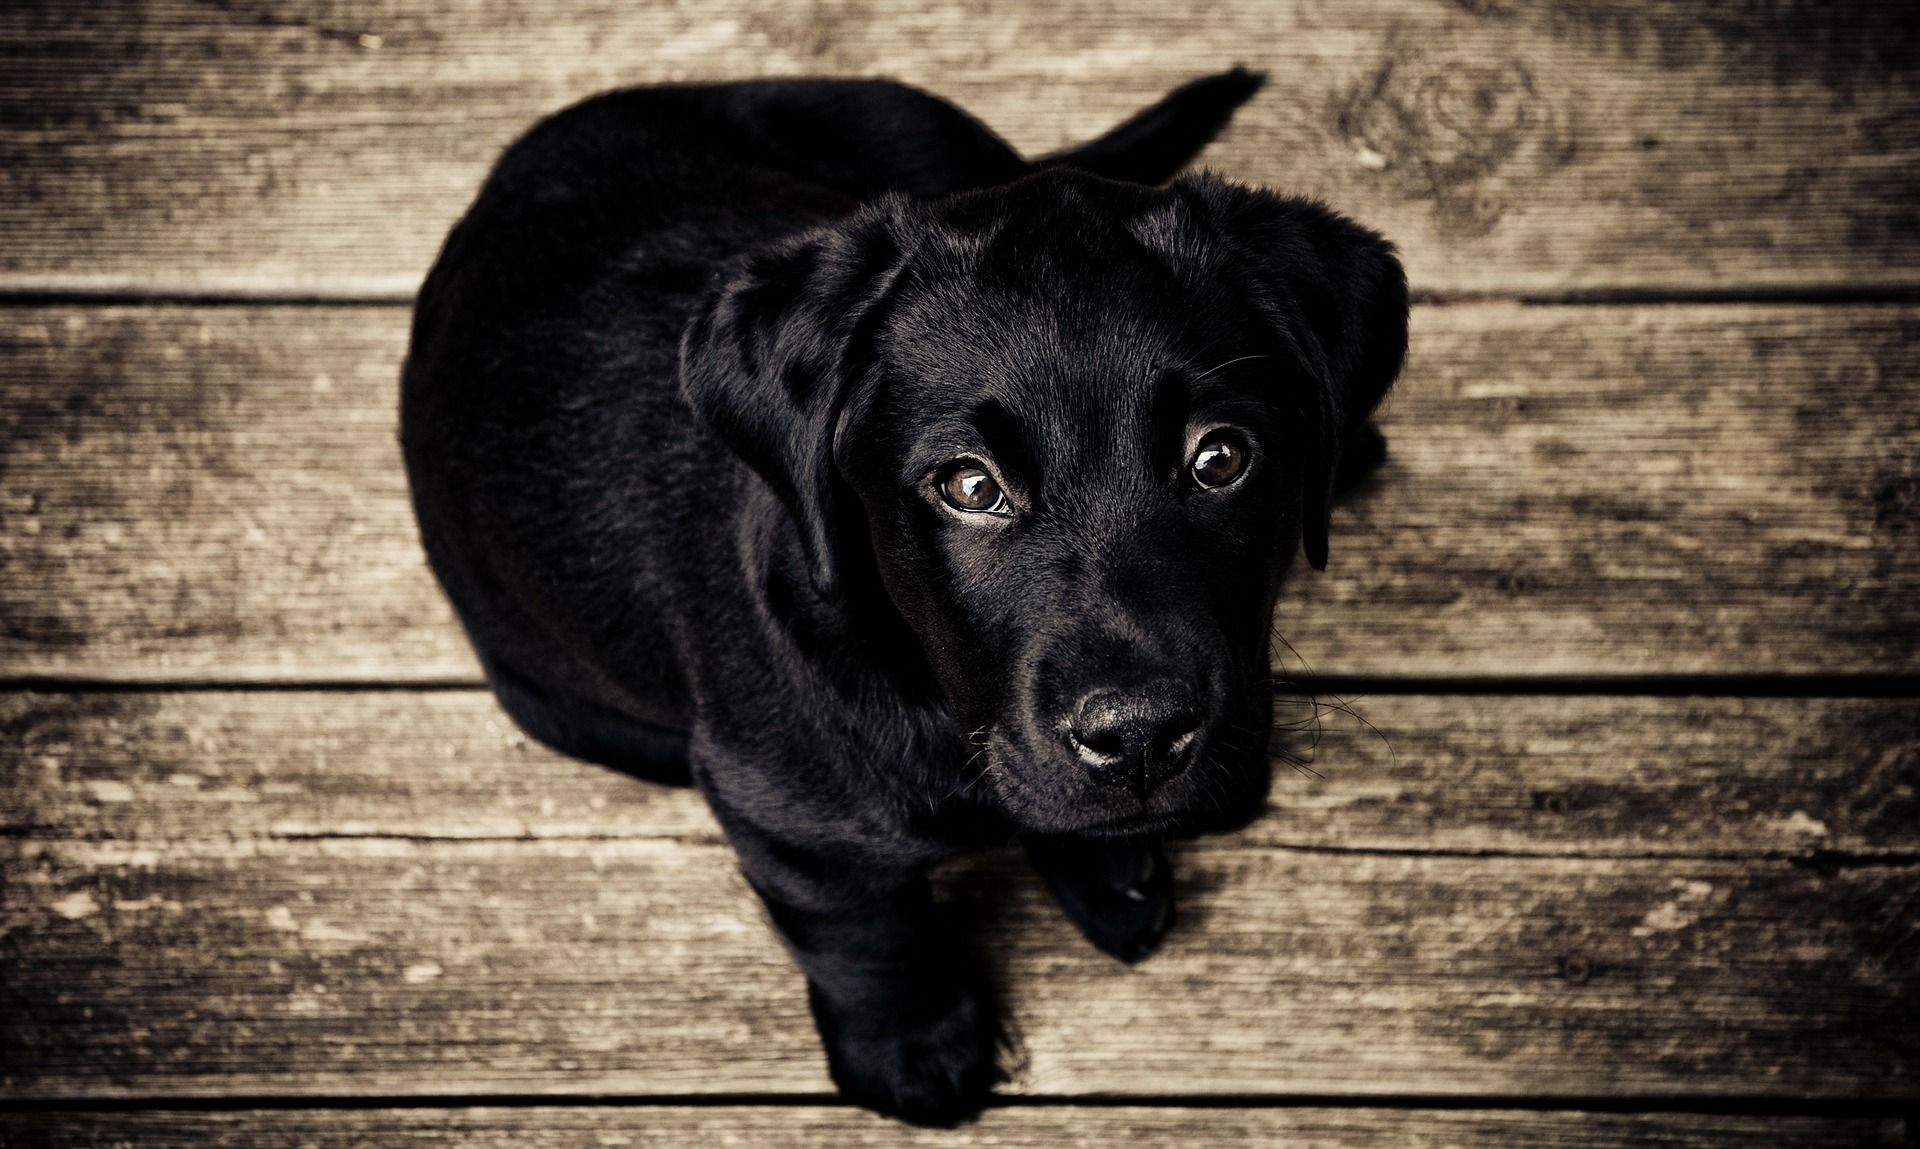 Does Your Dog Know Your Mood? - http://www.outoftheboxscience.com/living-world/that-is-exactly-what-a-team-of-researchers-from-the-university-of-lincoln-in-the-uk-and-the-university-of-sao-paulo-in-brazil-have-attempted-to-discern-why-is-this-being-studied-because-being-able/